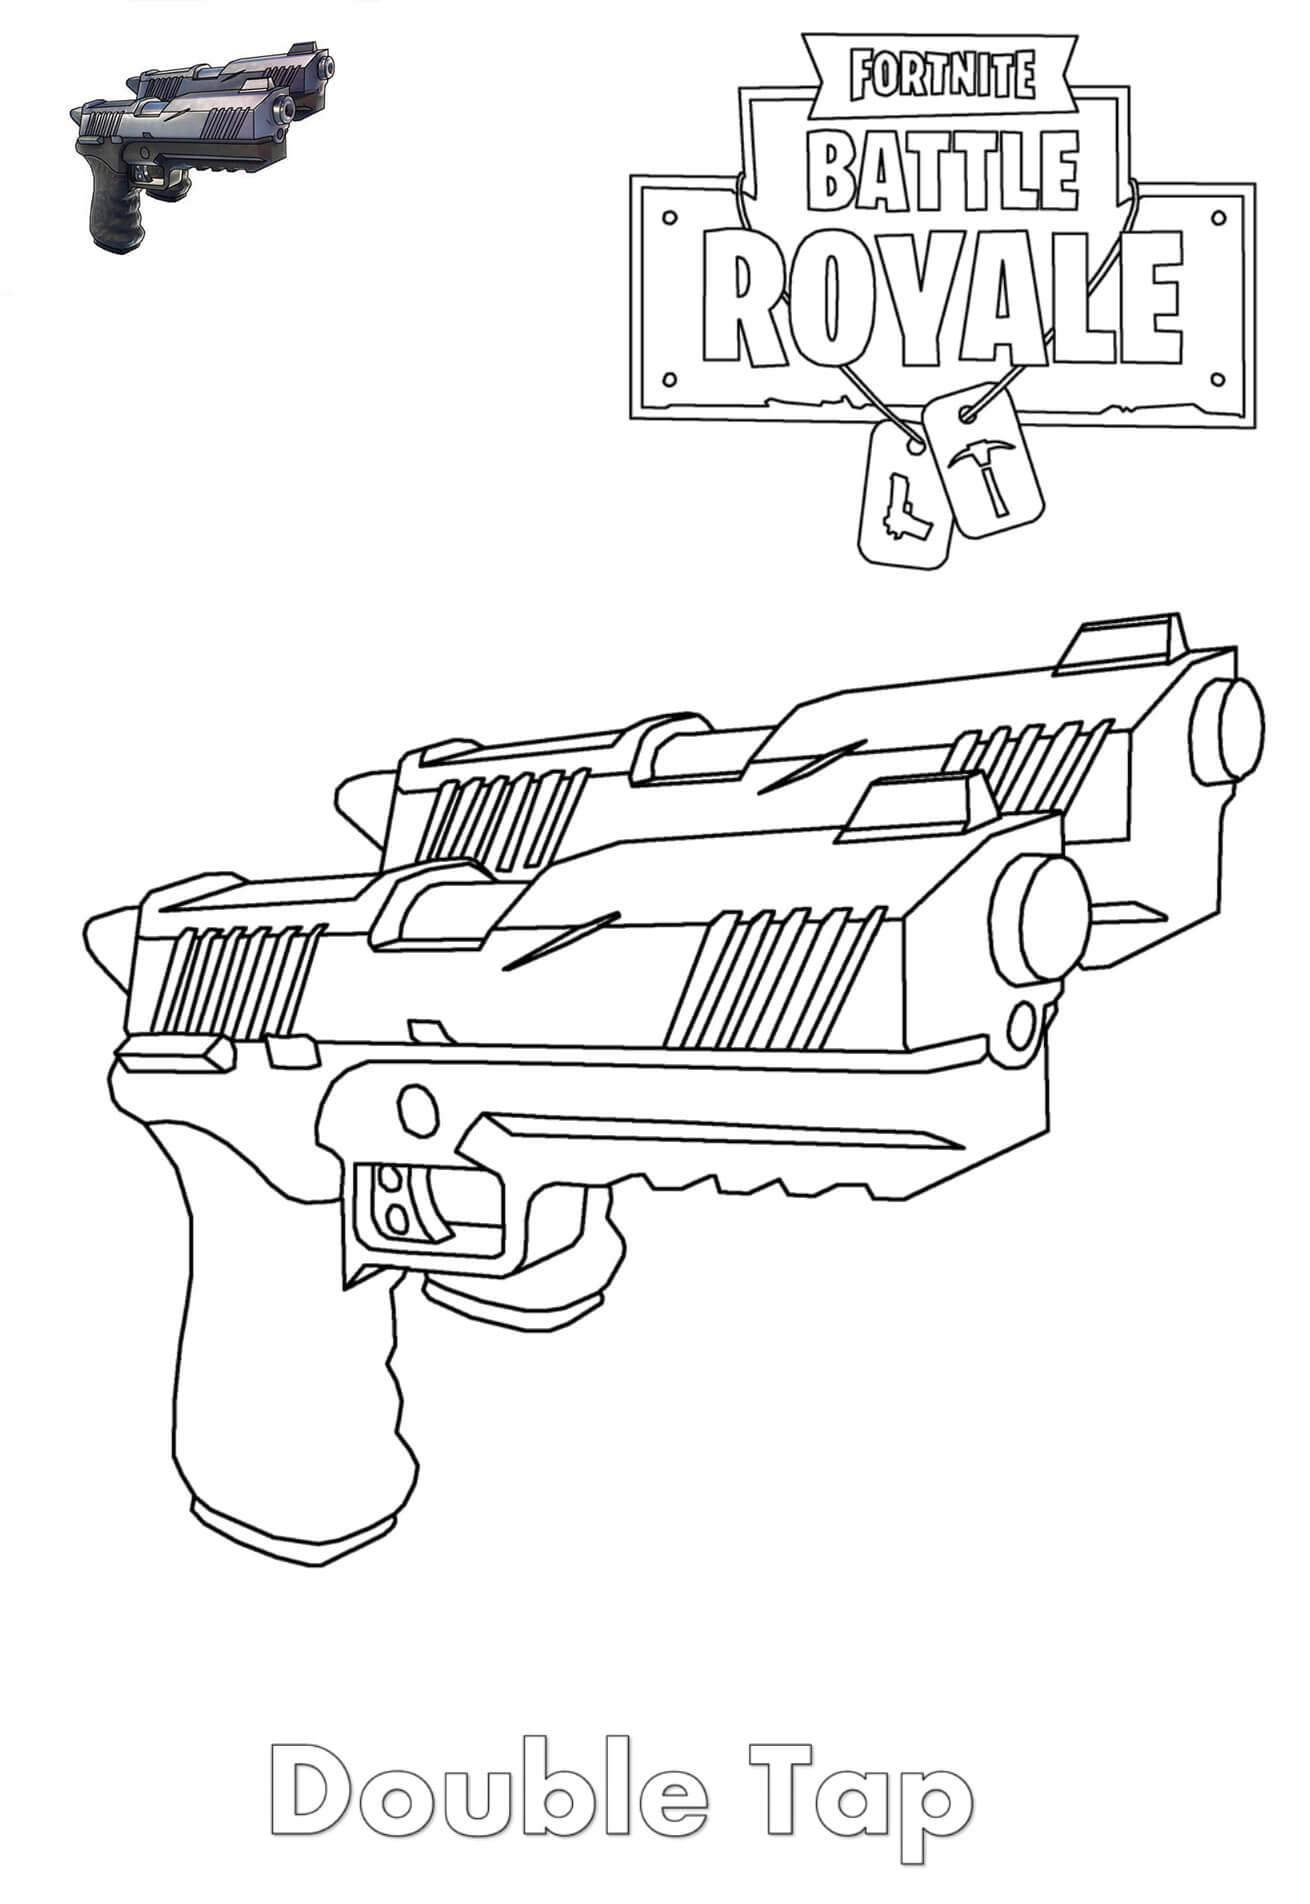 Free Simple Fortnite Skin Coloring Pages Double for Kids printable